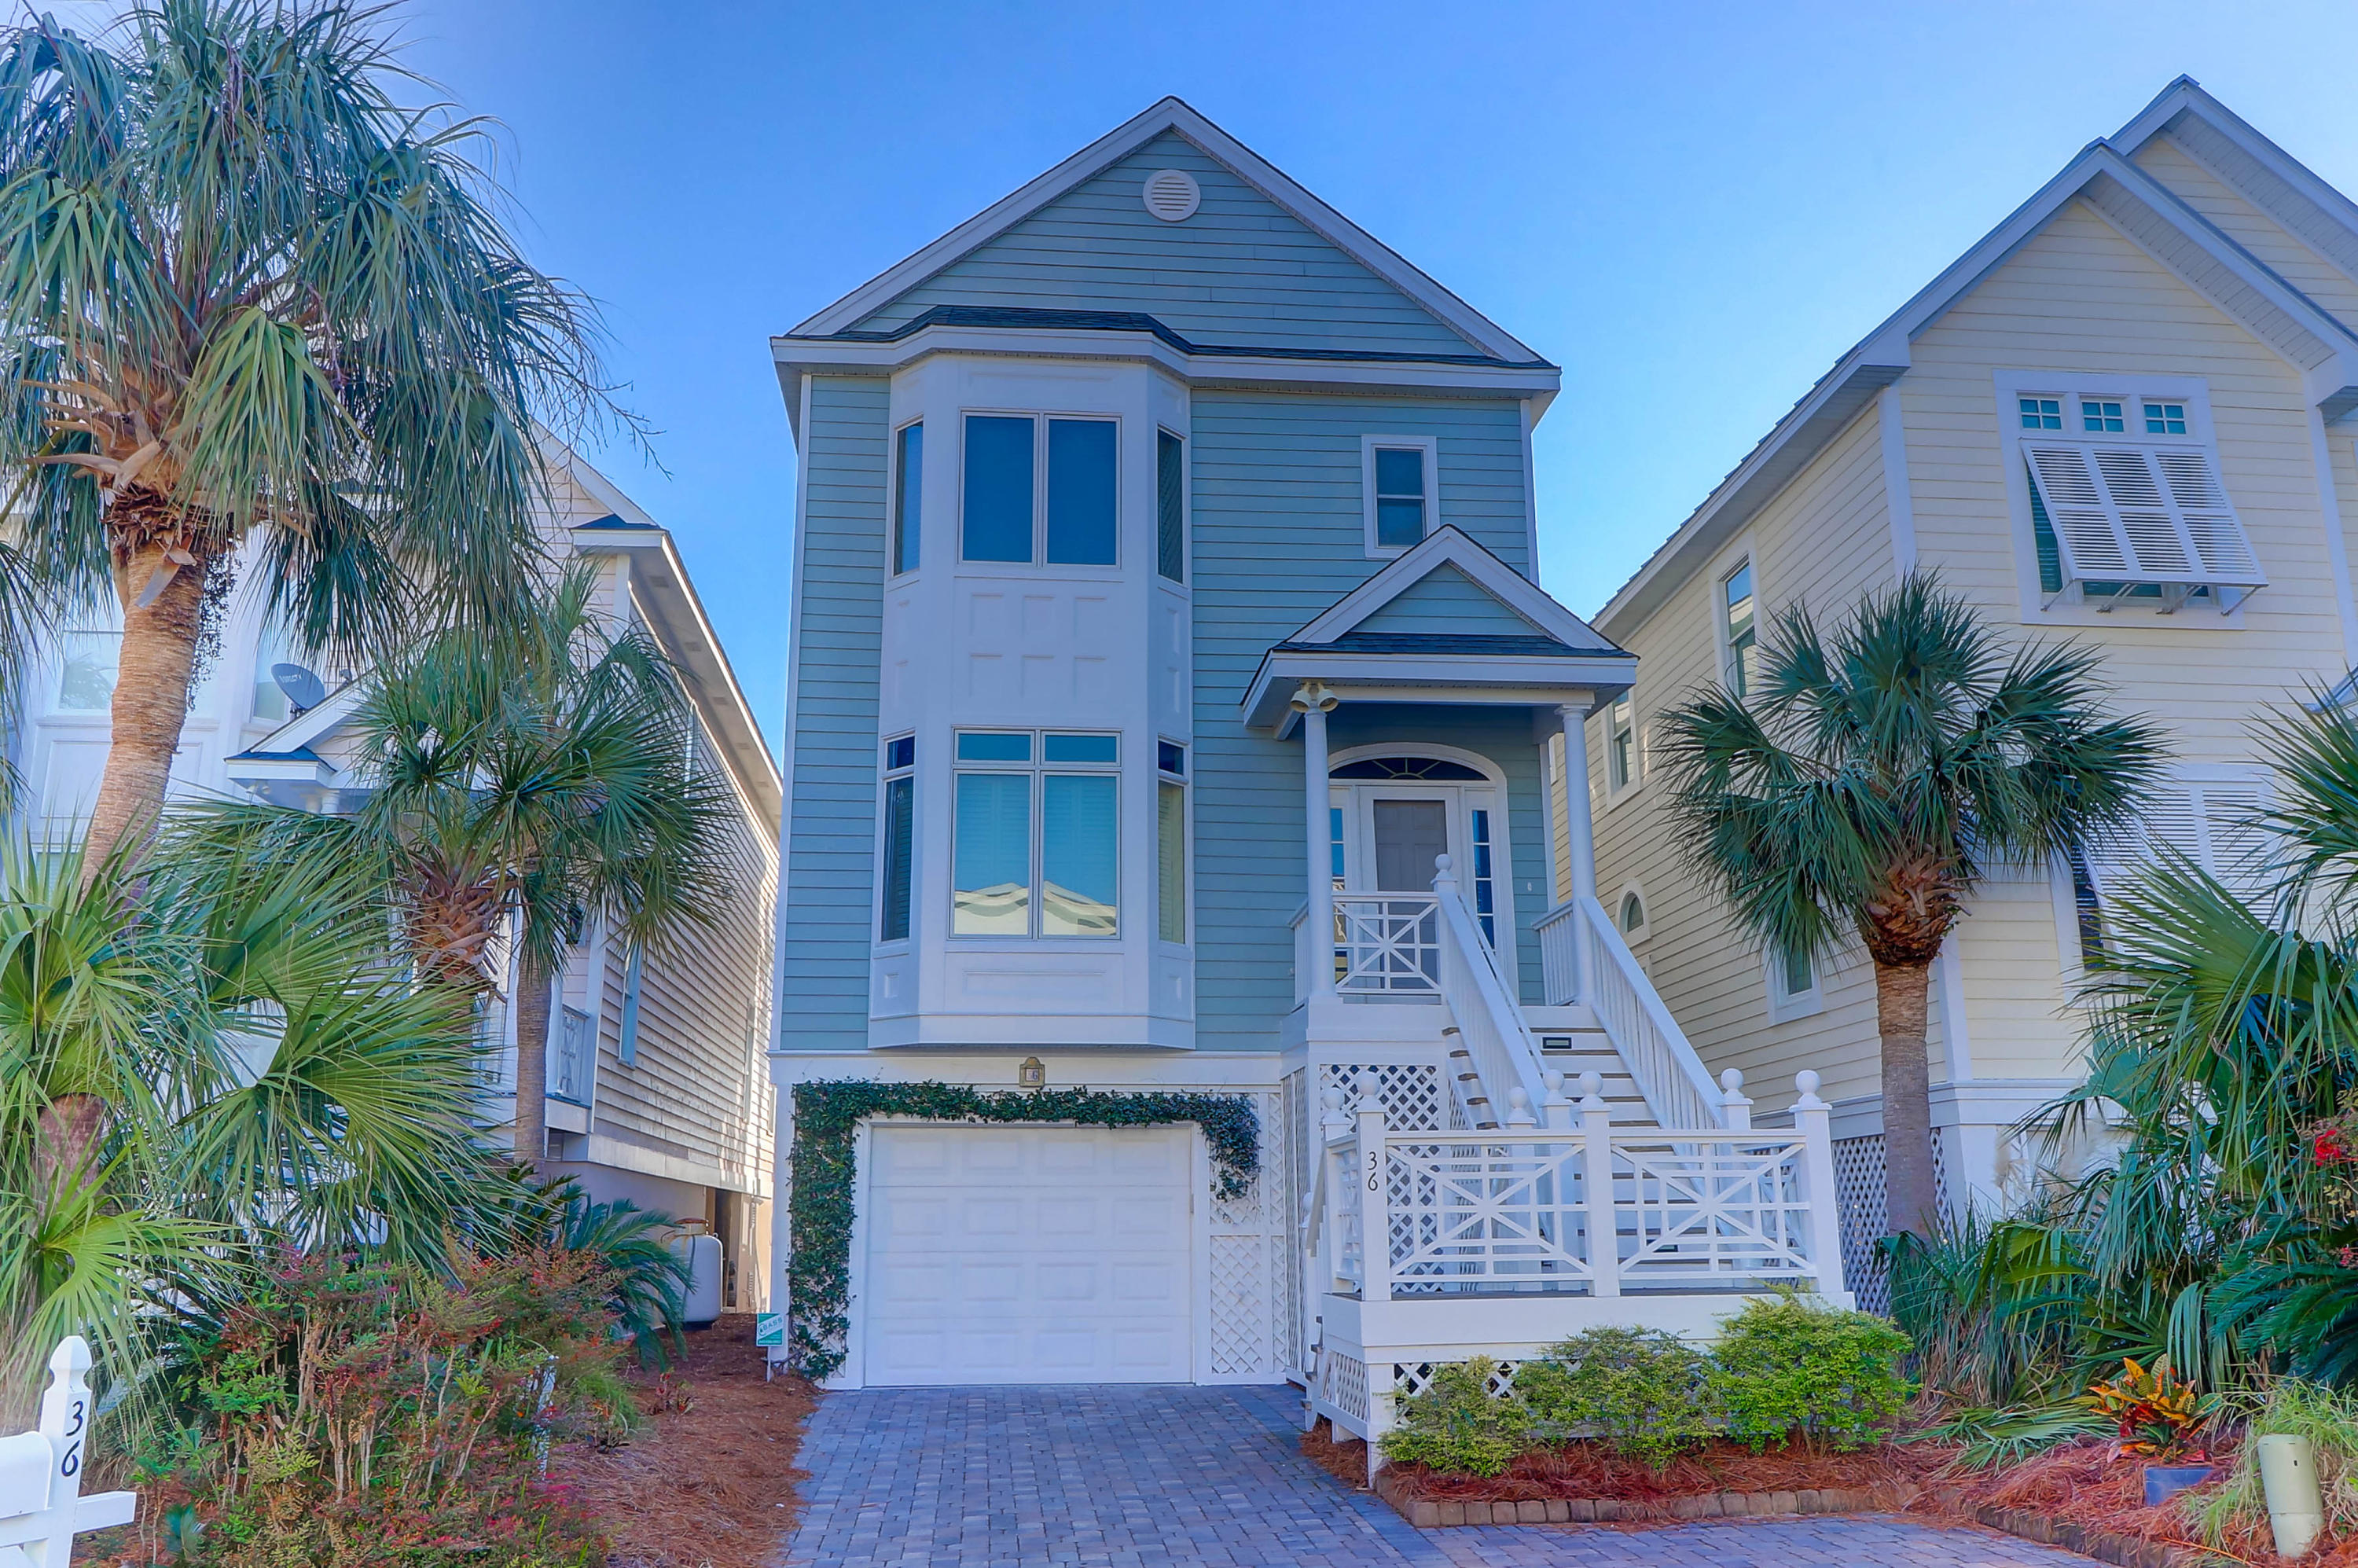 Wild Dunes Homes For Sale - 36 Ocean Point, Isle of Palms, SC - 29